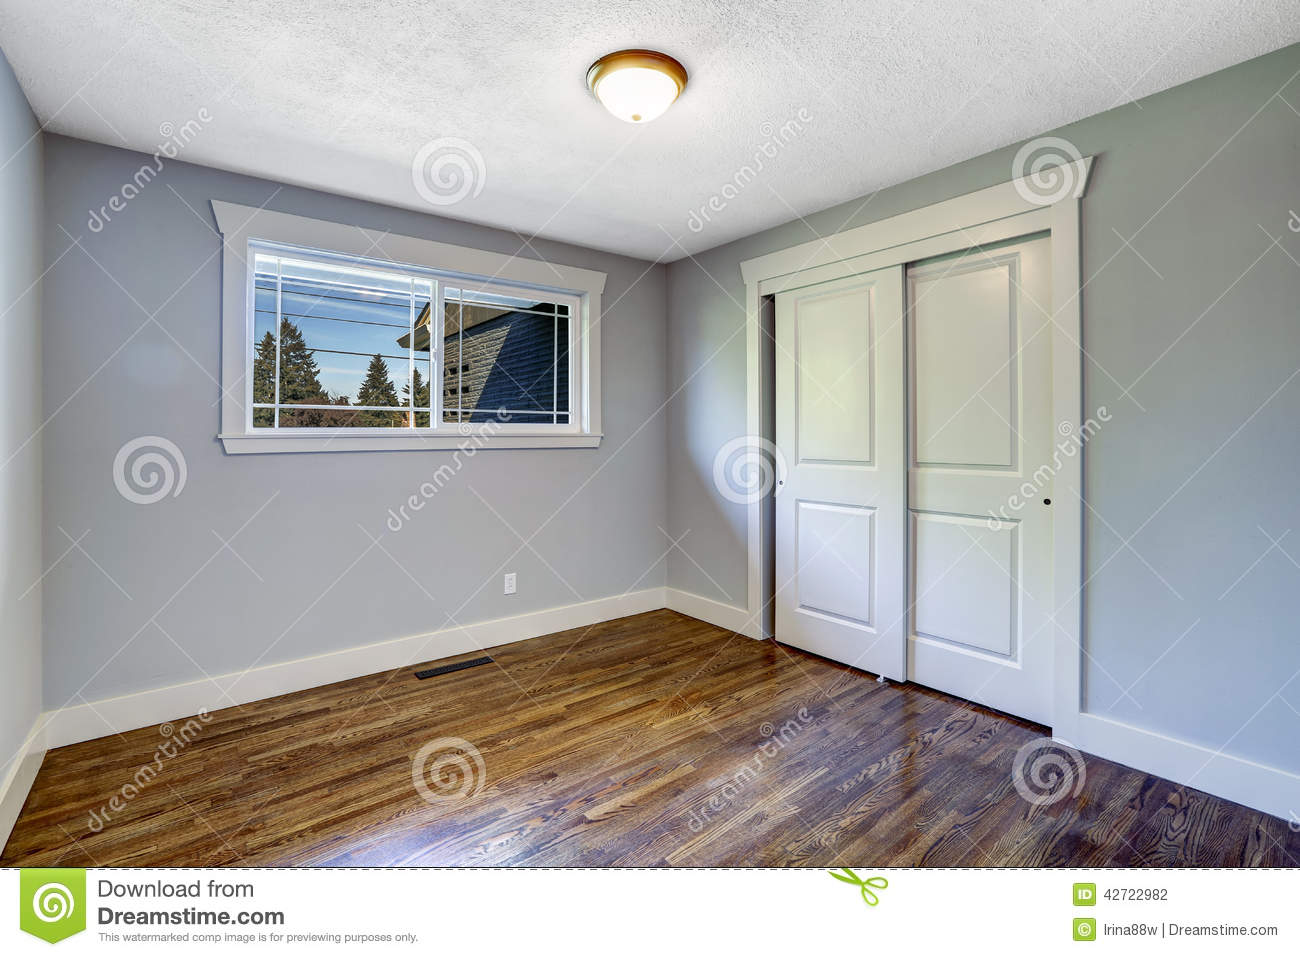 Light Blue Rooms empty light blue room with window stock photo - image: 42722982